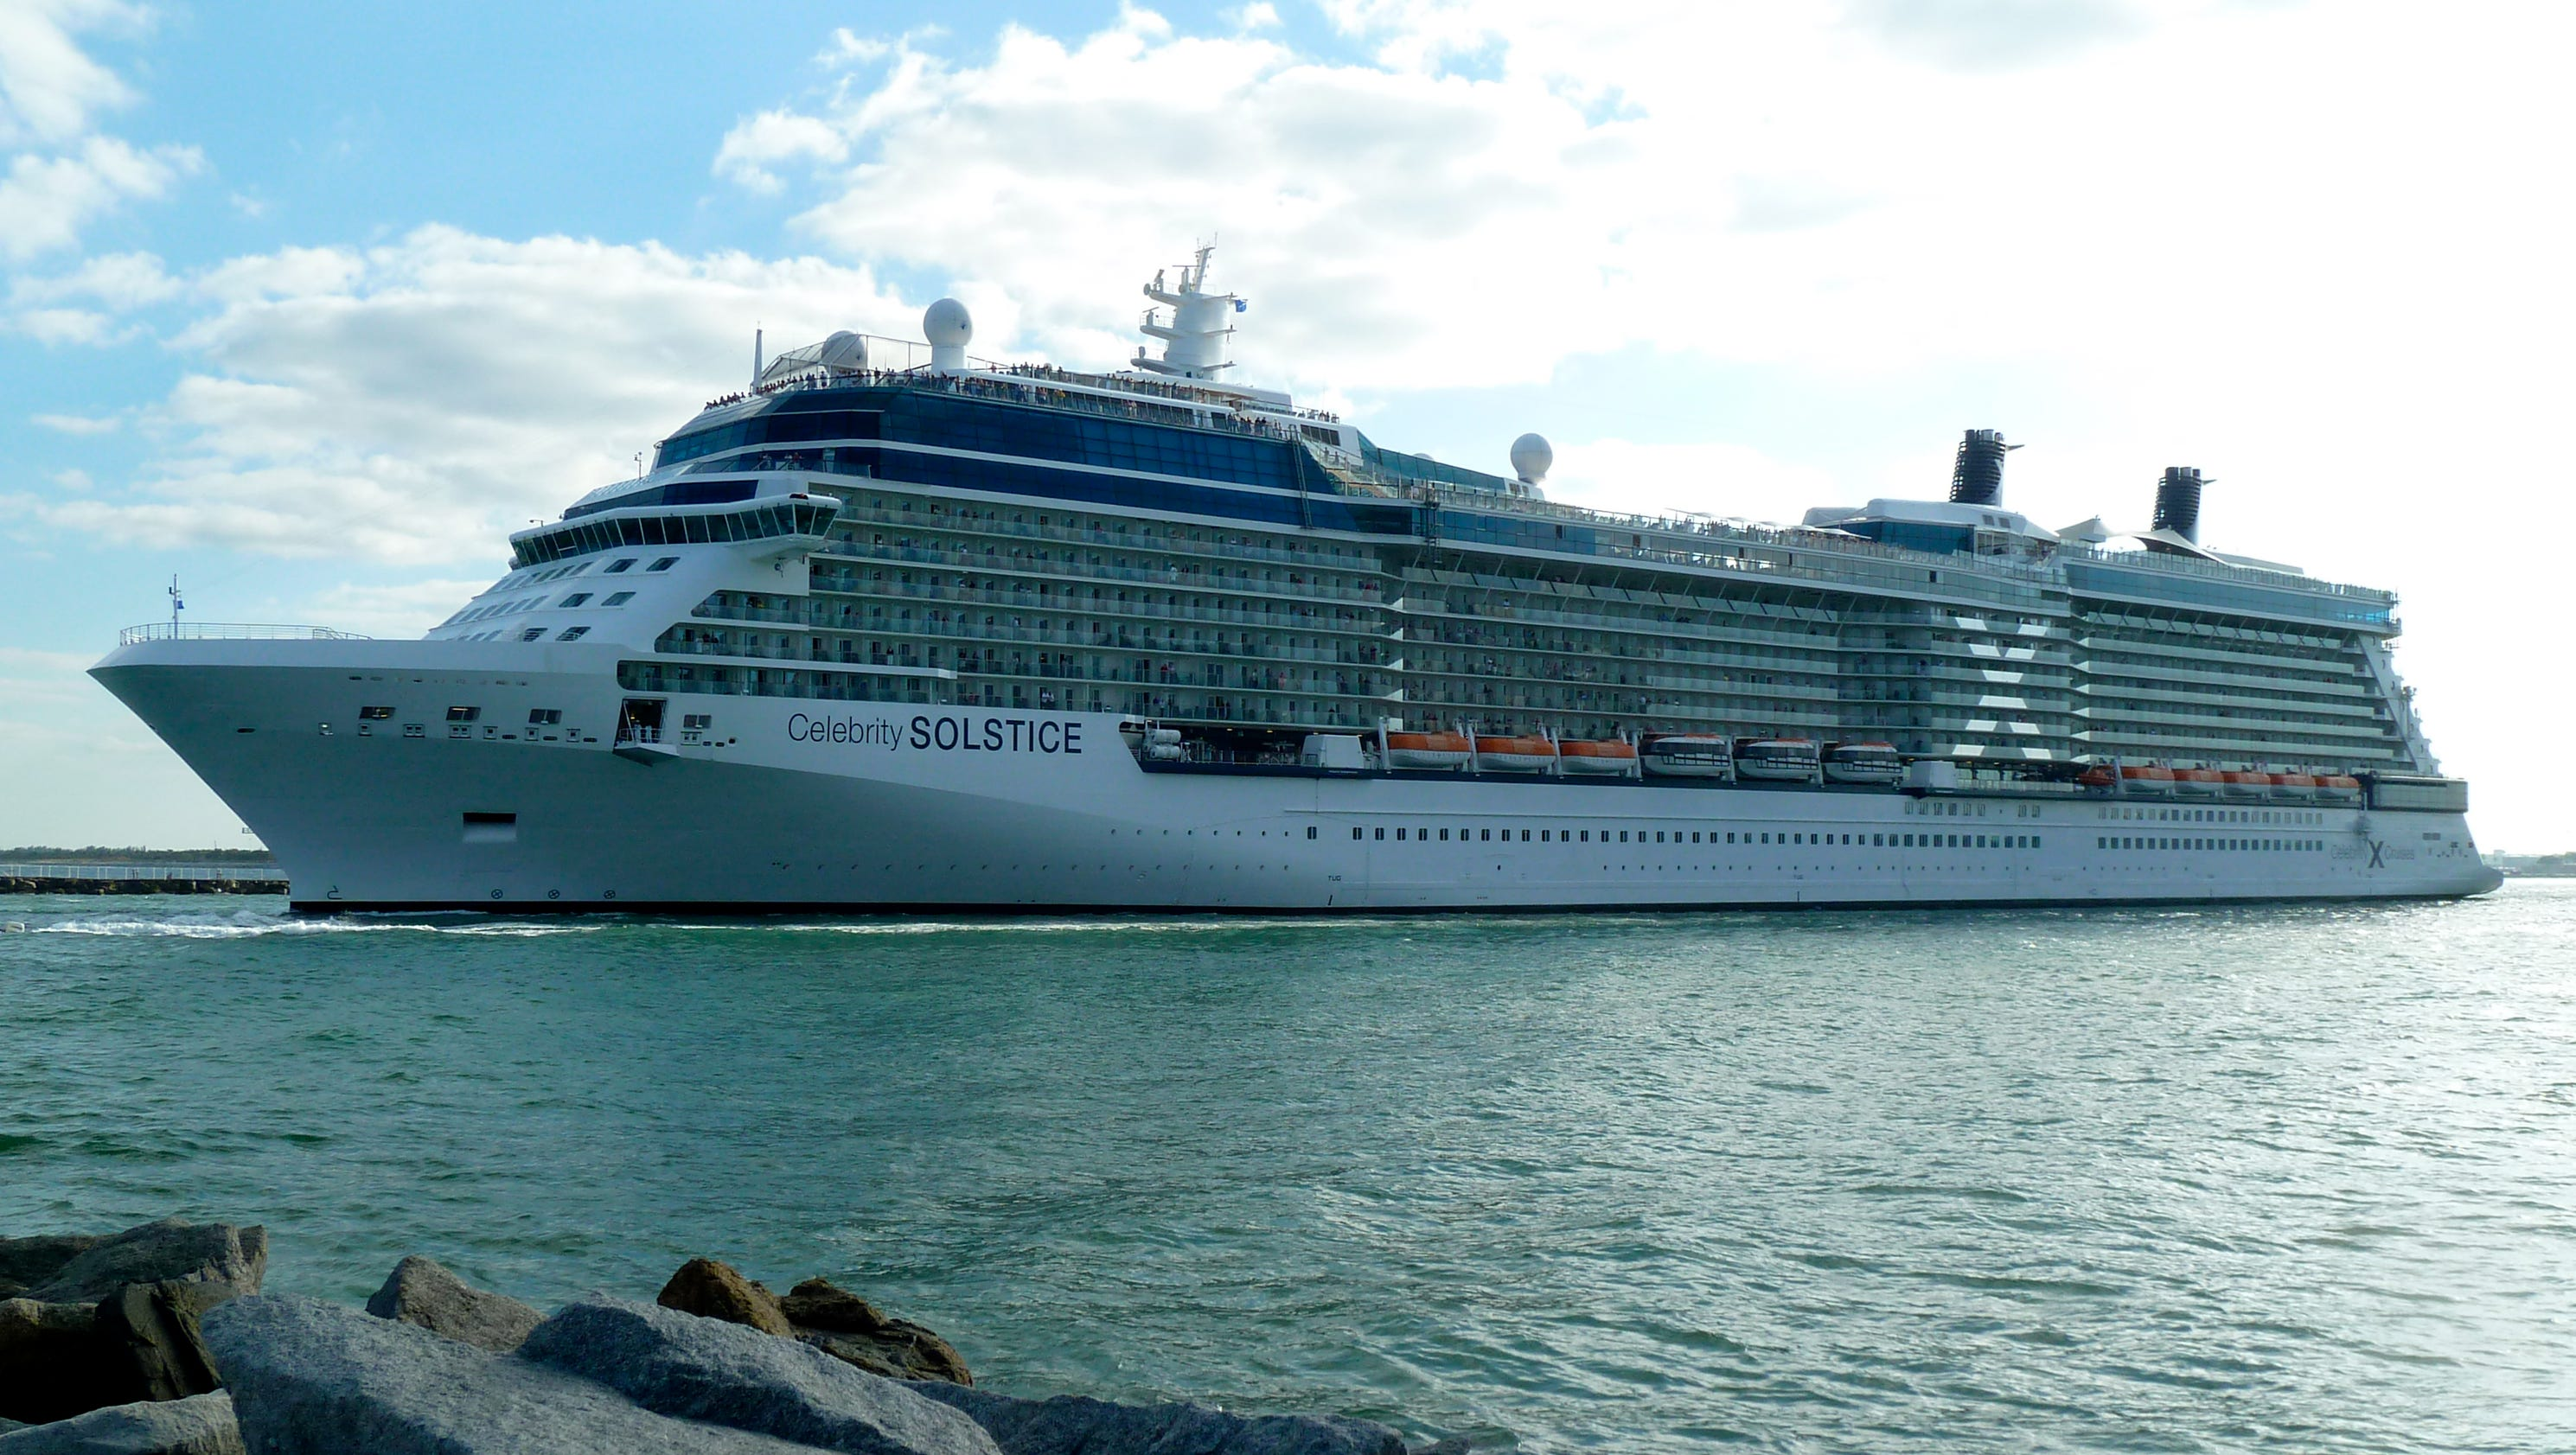 Celebrity solstice in brisbane today